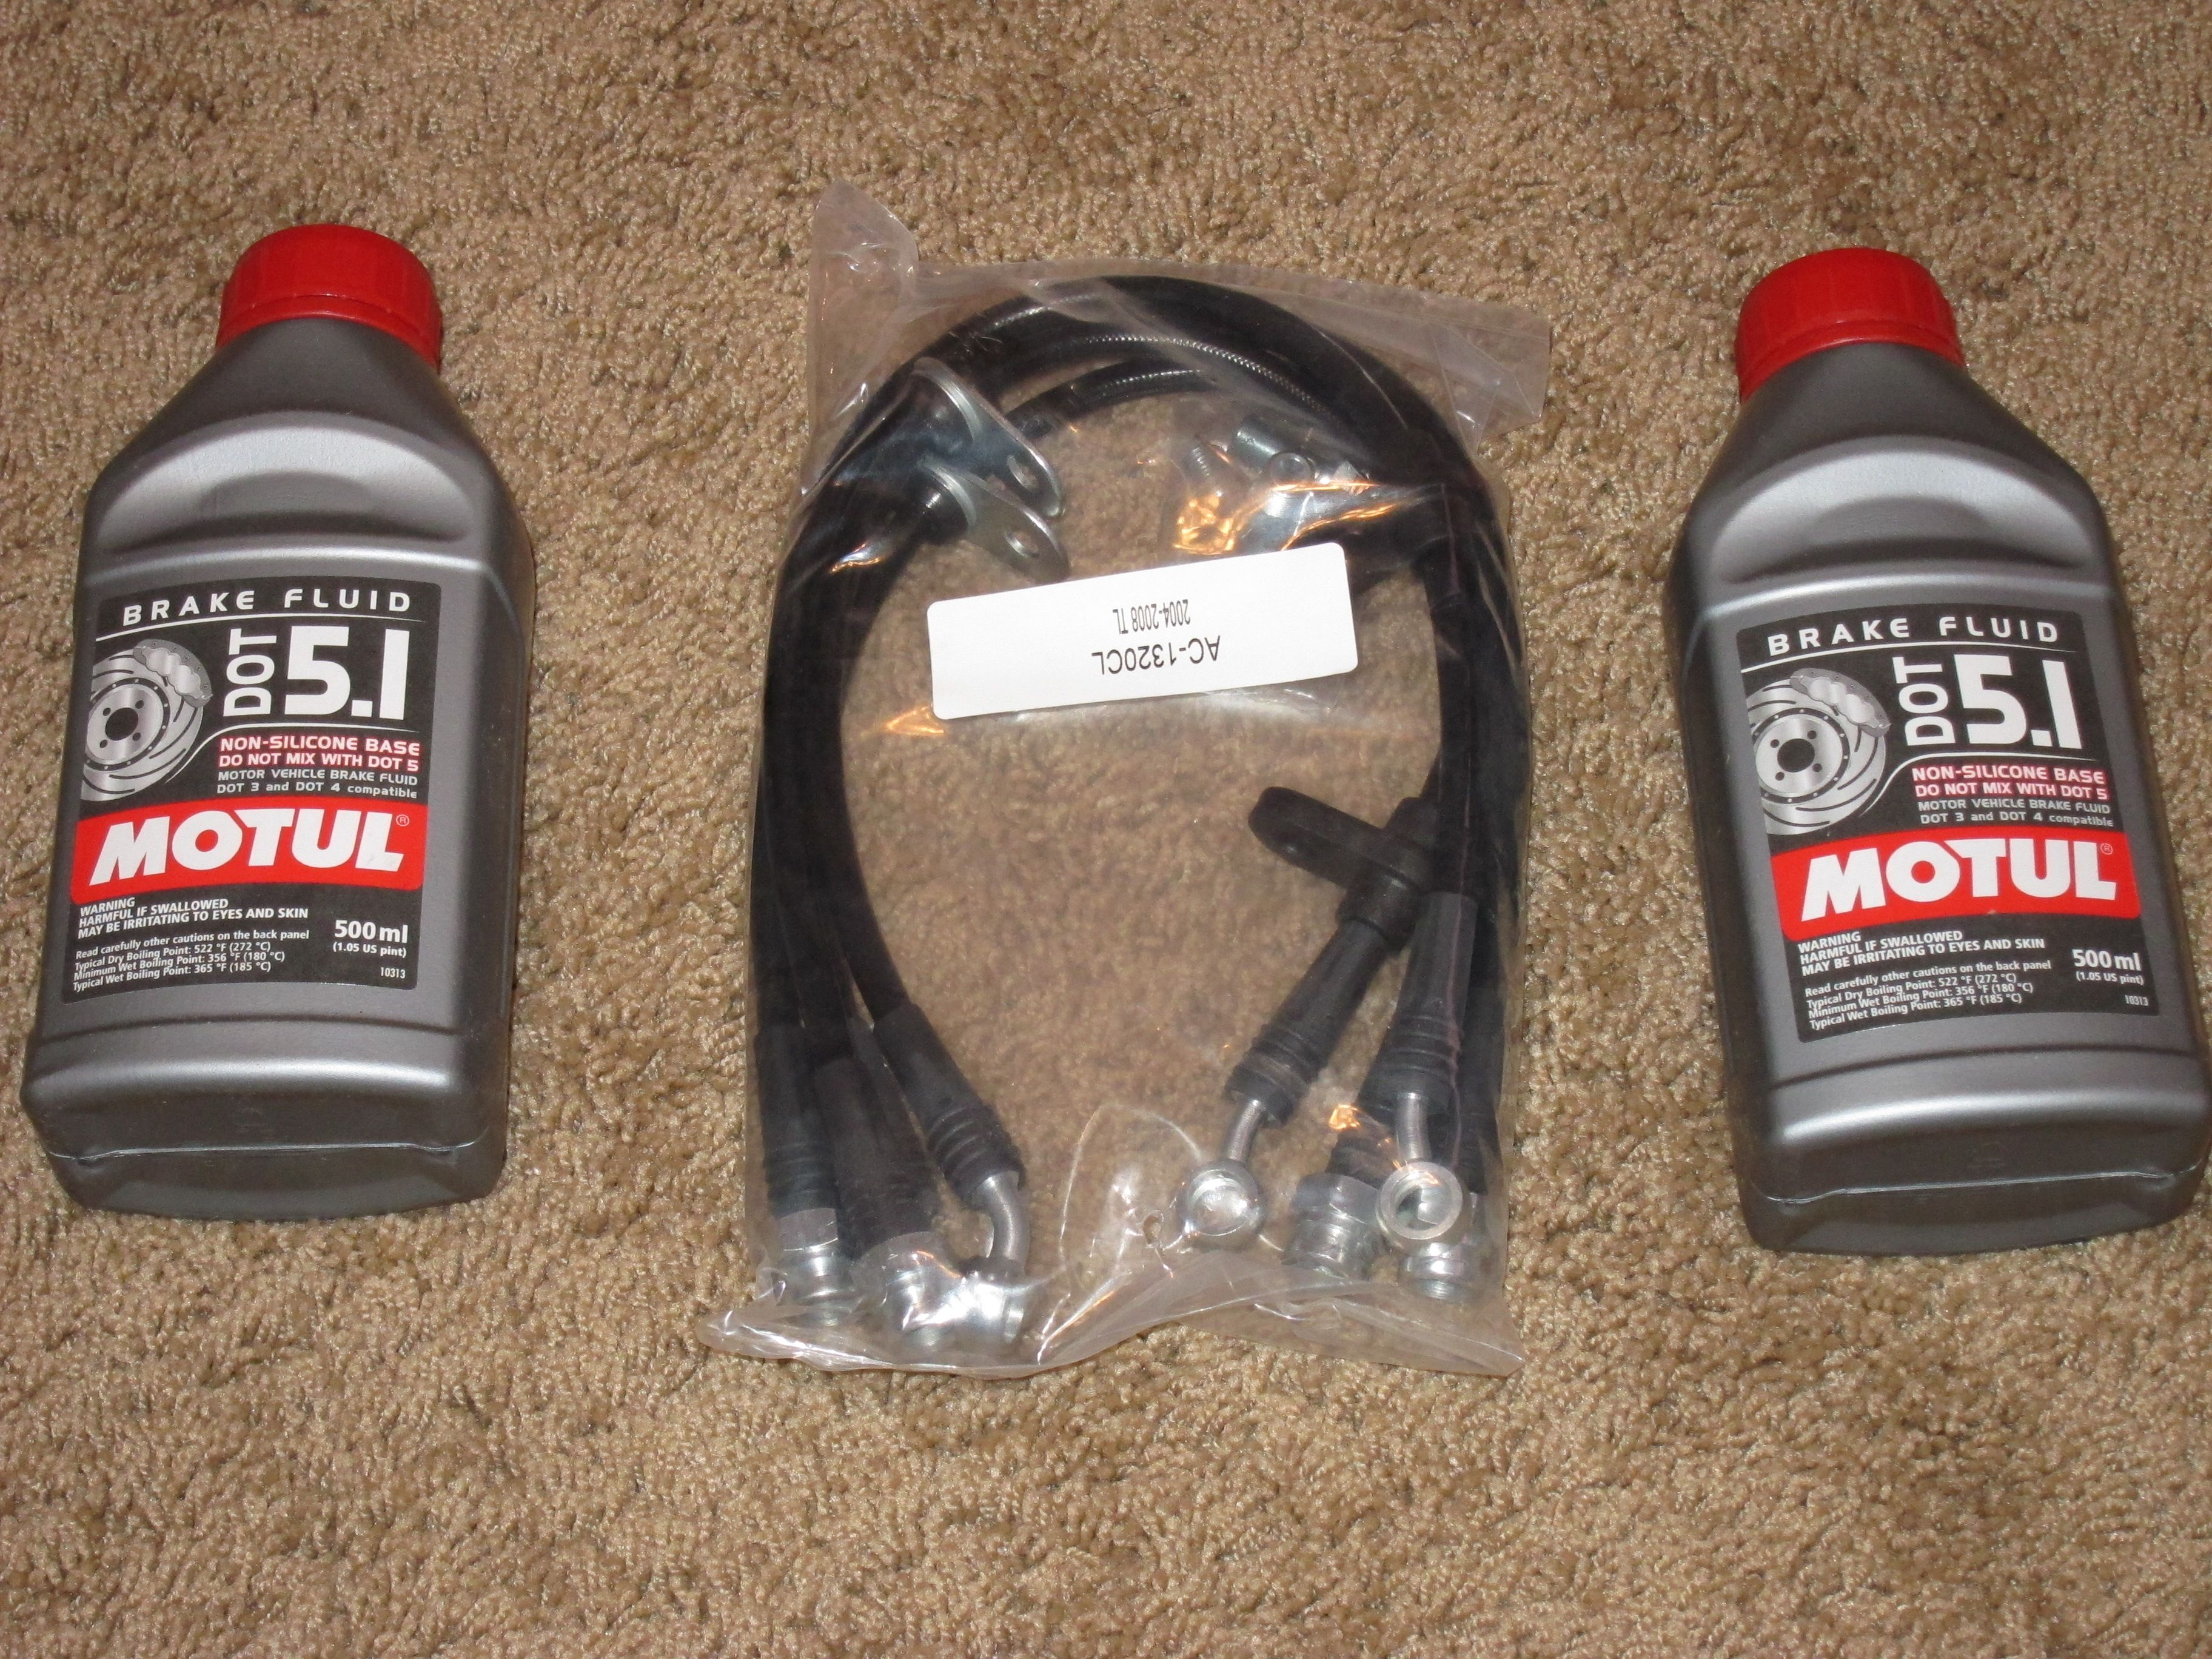 Stainless Steel Brake Lines and High Performance Fluid